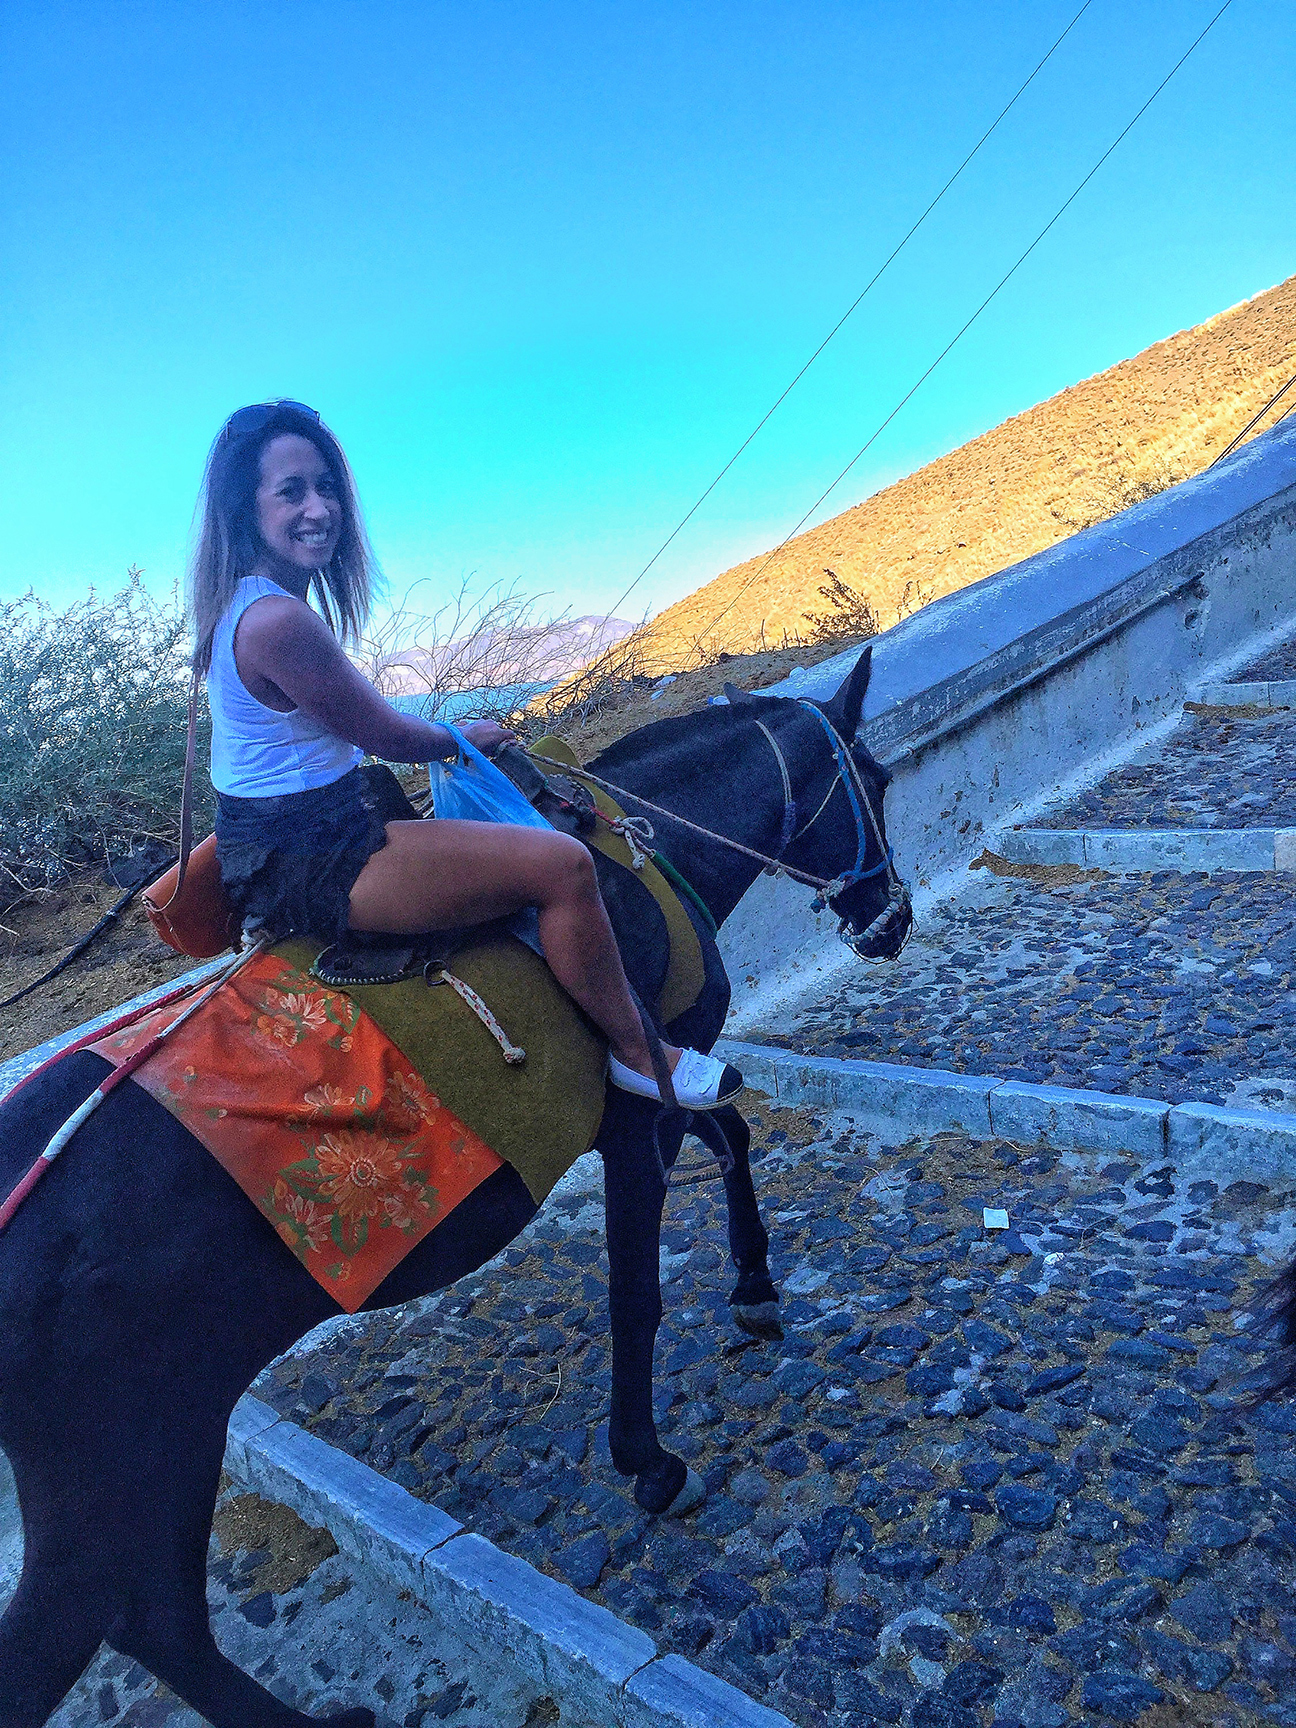 It is slightly hard getting a good photo on yourself riding a donkey - hence the weird coloring of this